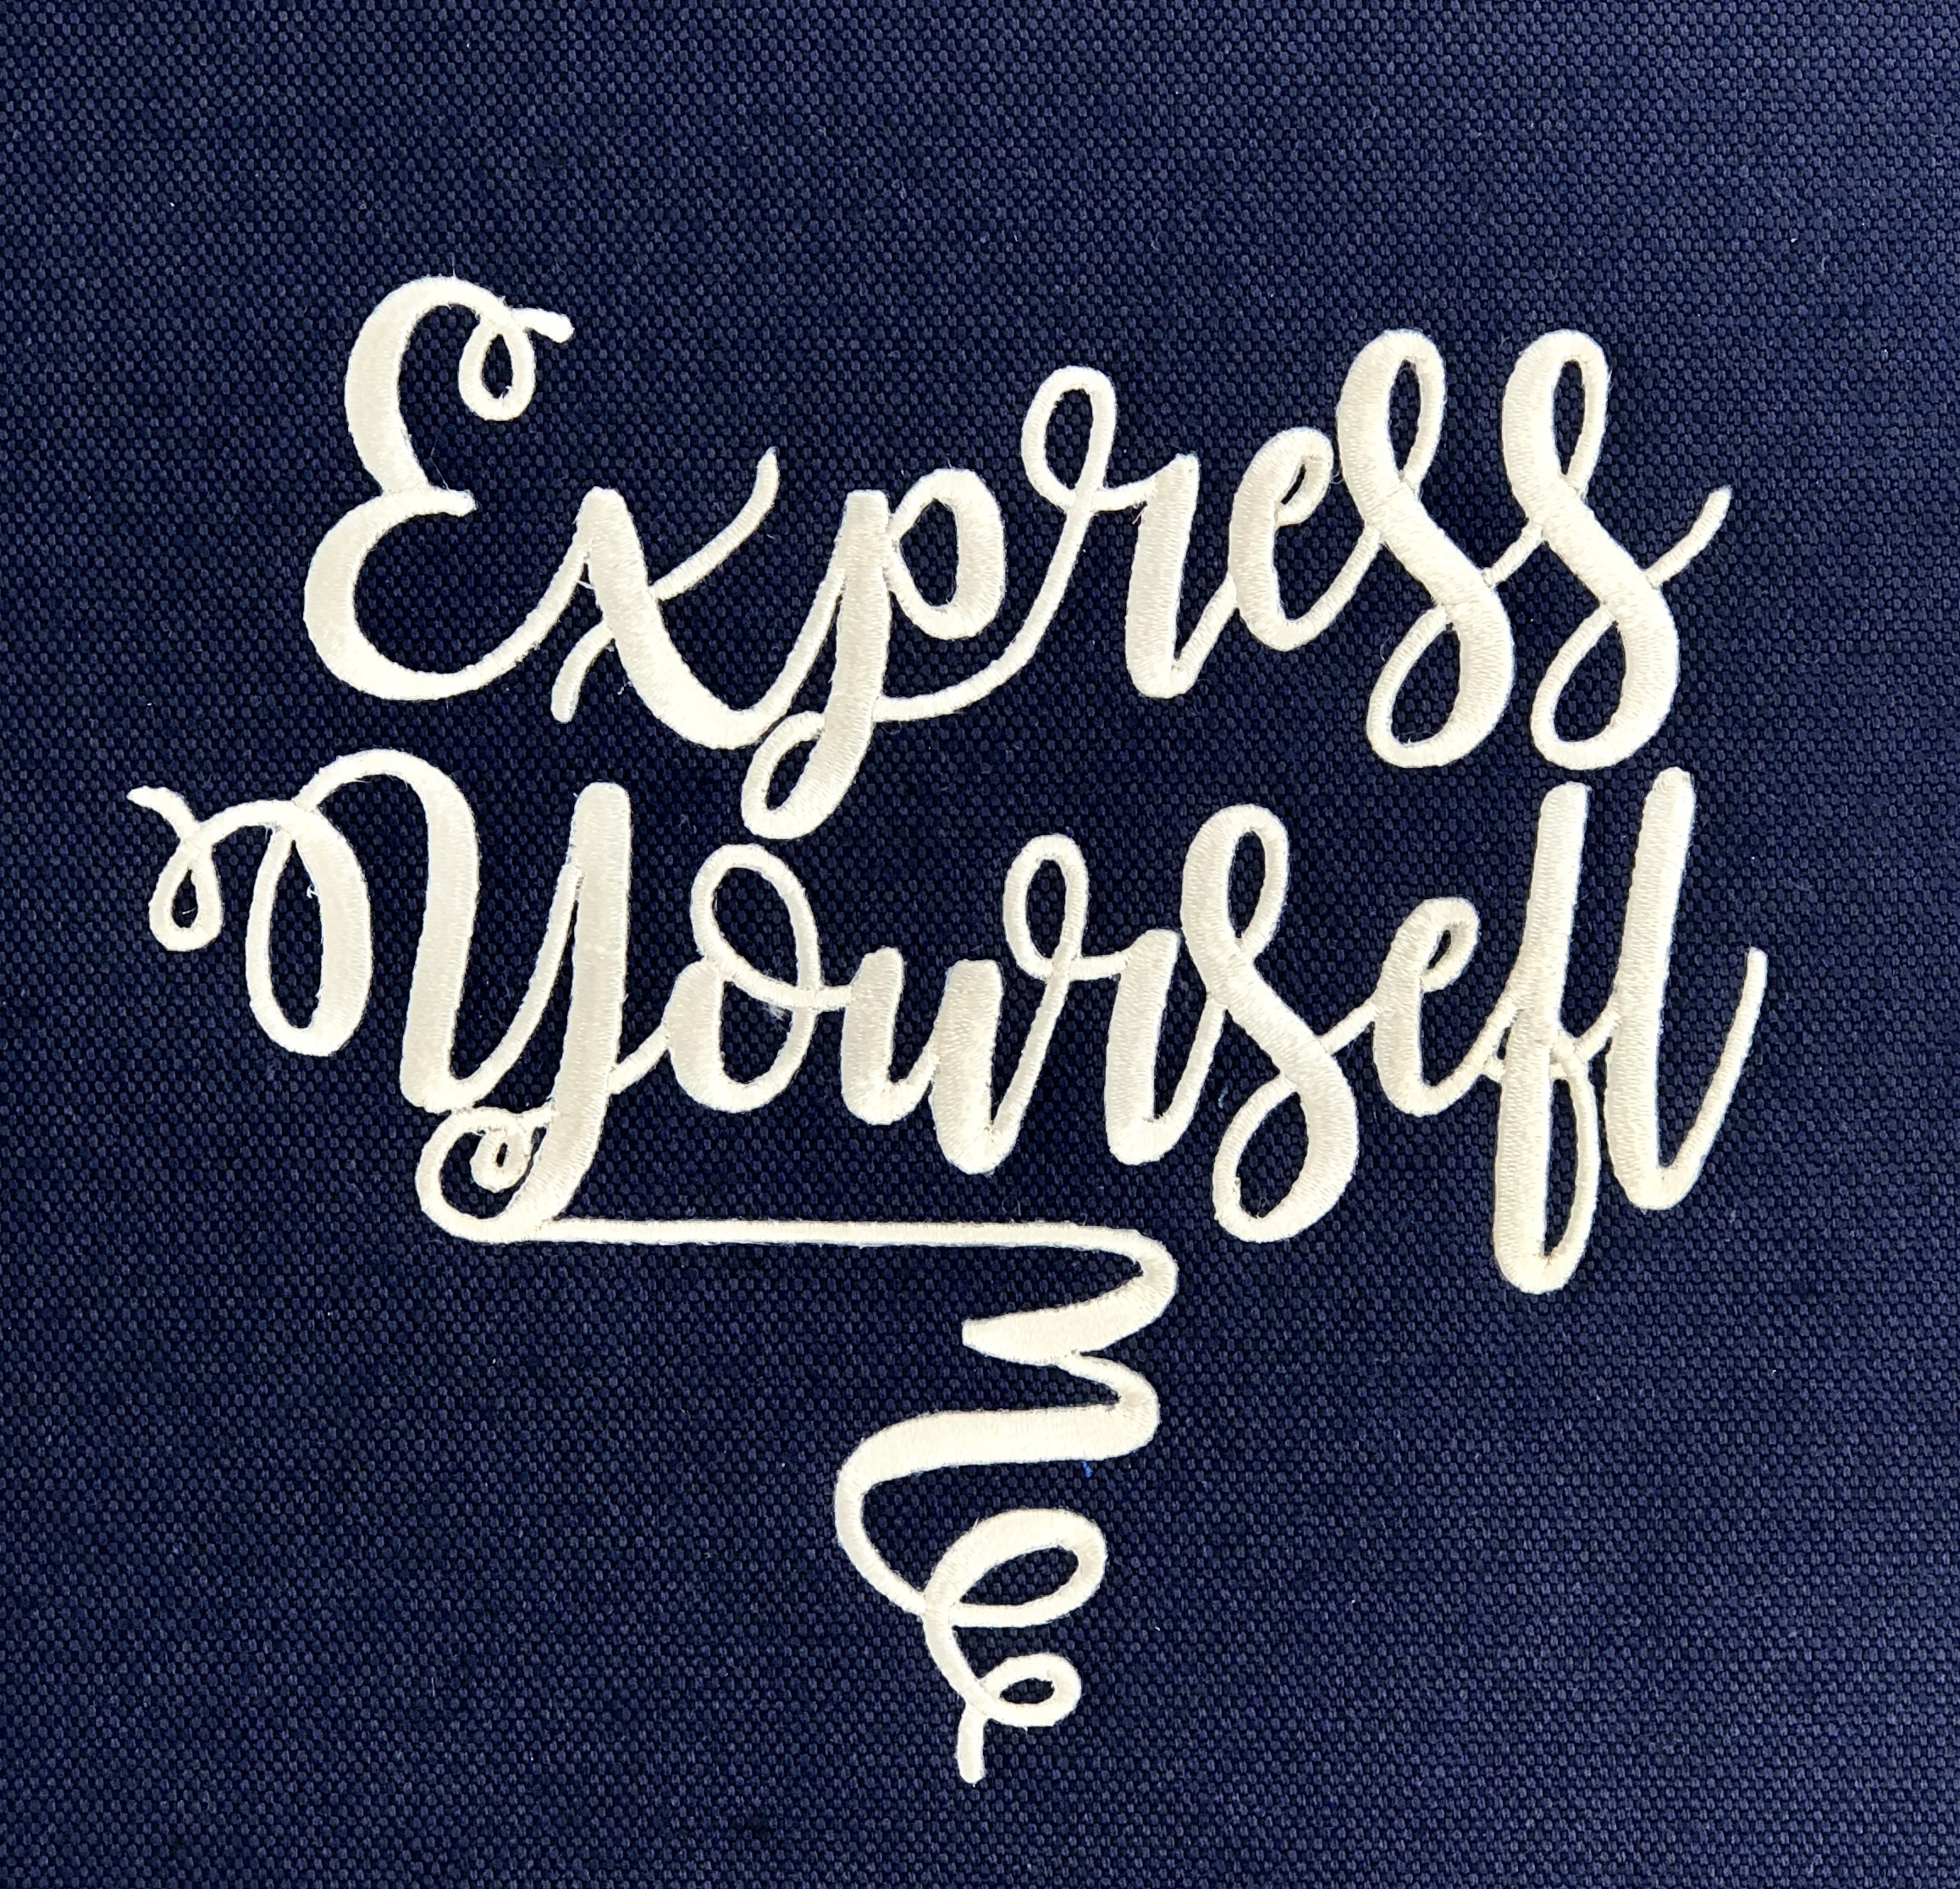 express yourself.jpg